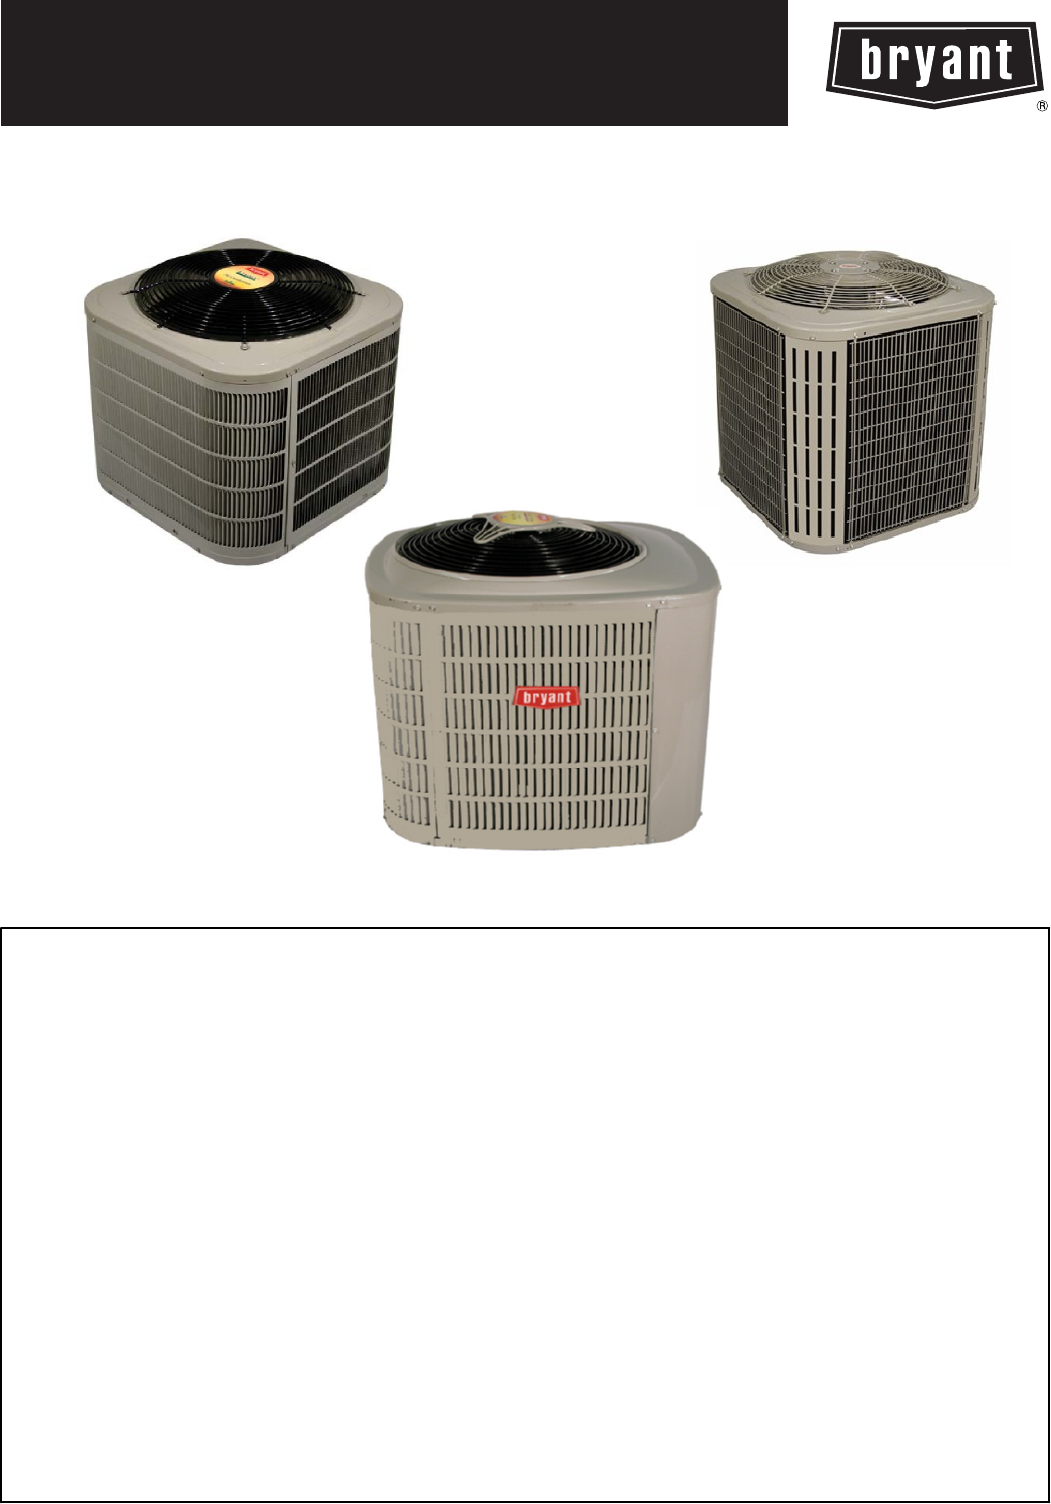 #9F322C Bryant Air Conditioner Central Air Conditioning System  Brand New 11271 Bryant Central Air Conditioning Units images with 1051x1504 px on helpvideos.info - Air Conditioners, Air Coolers and more